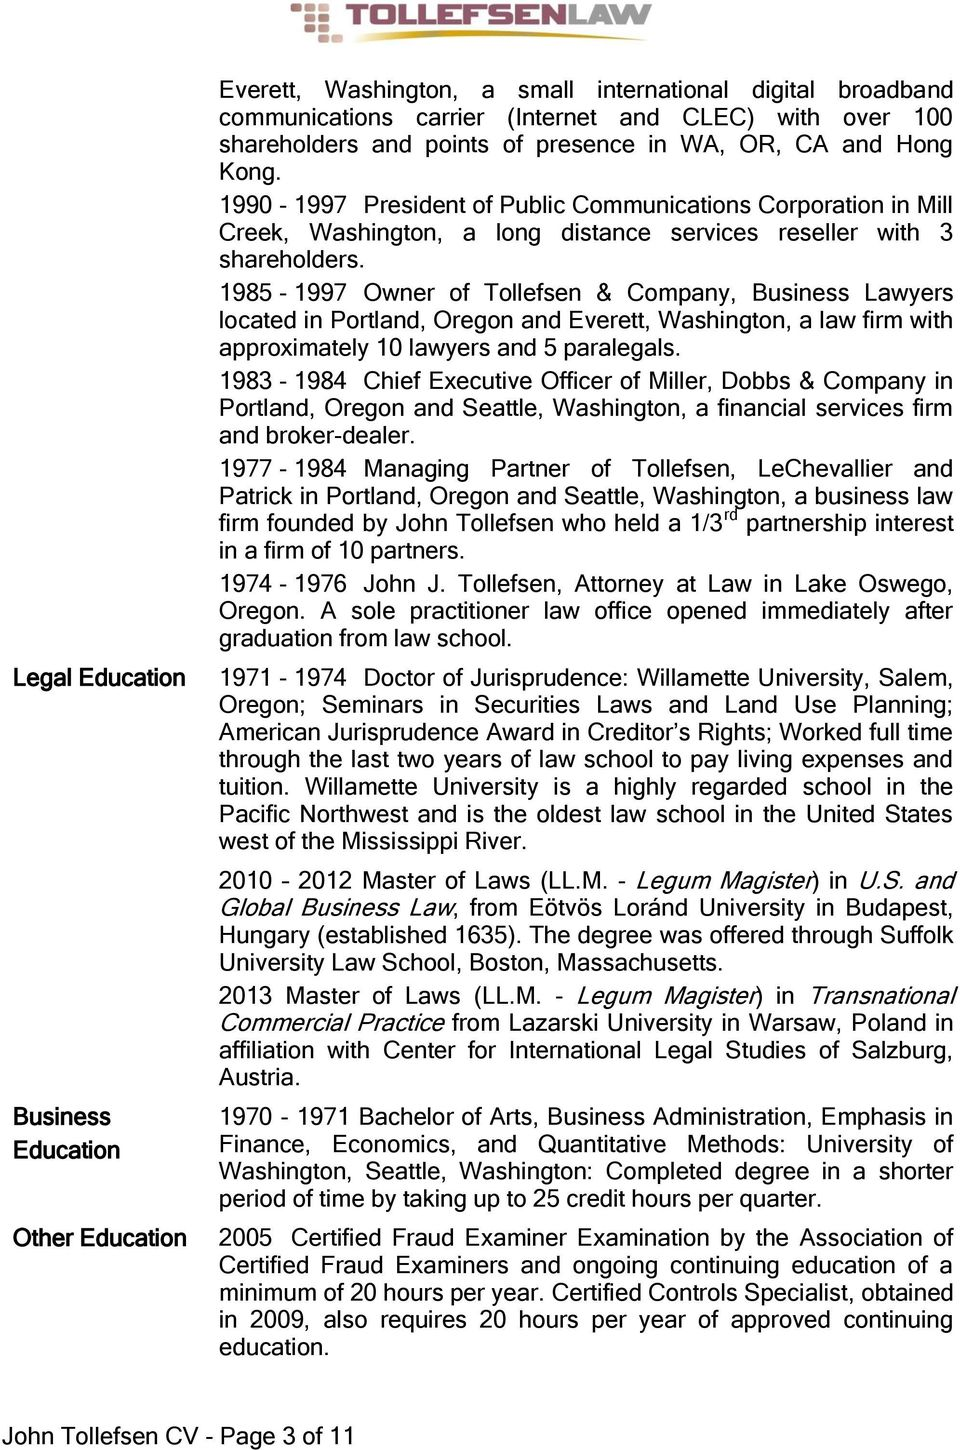 1985-1997 Owner of Tollefsen & Company, Business Lawyers located in Portland, Oregon and Everett, Washington, a law firm with approximately 10 lawyers and 5 paralegals.